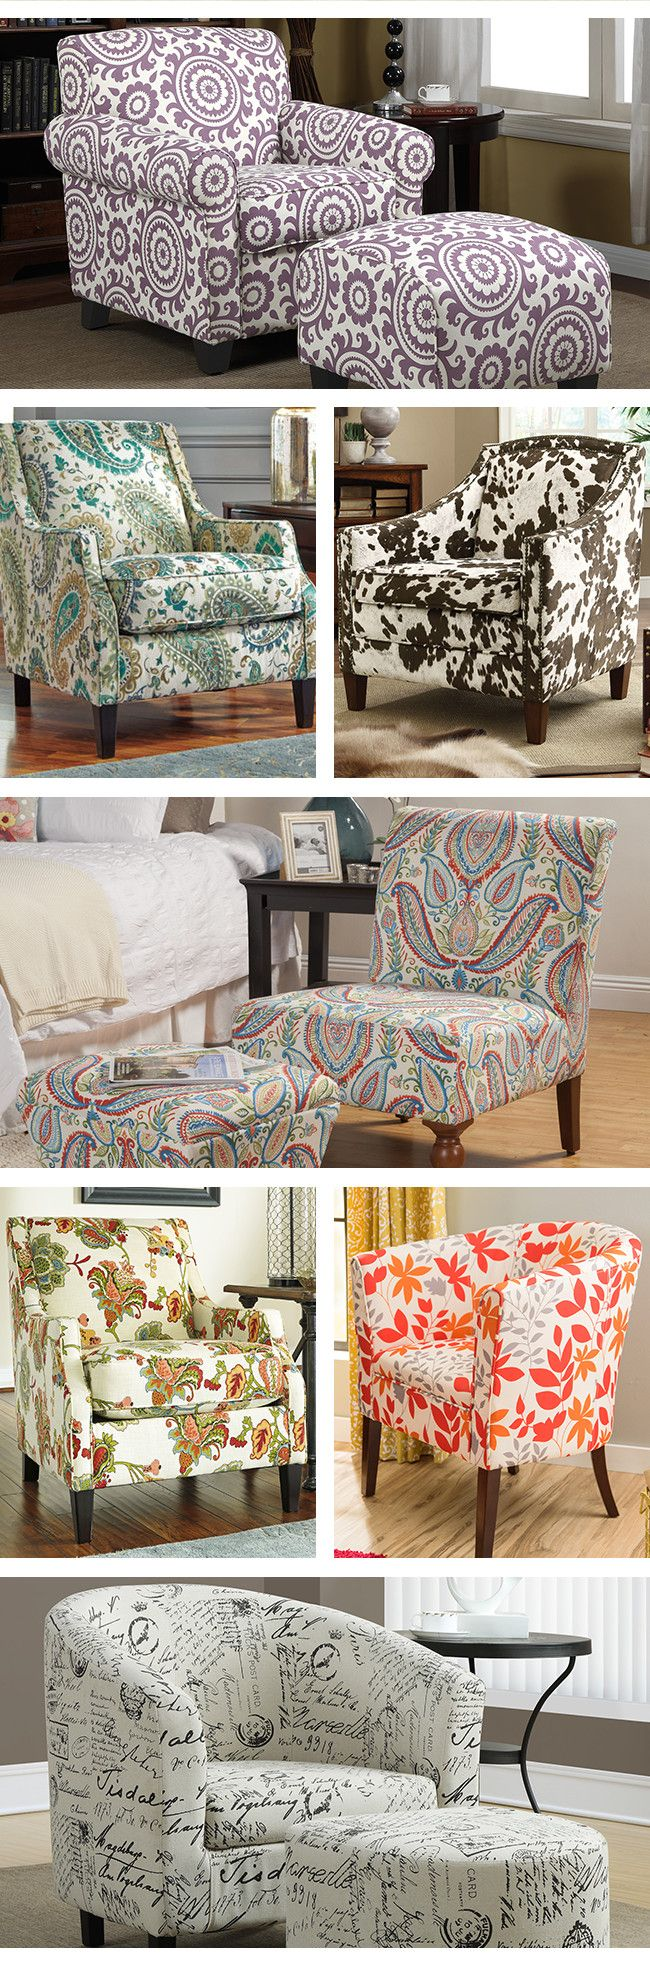 Accent chairs are an absolutely essential part of any living room. From flowing floral designs to classic chevron, these accent chairs will enliven any space. Visit Wayfair and sign up today to get access to exclusive deals everyday up to 70% off. Free shipping on all orders over $49.